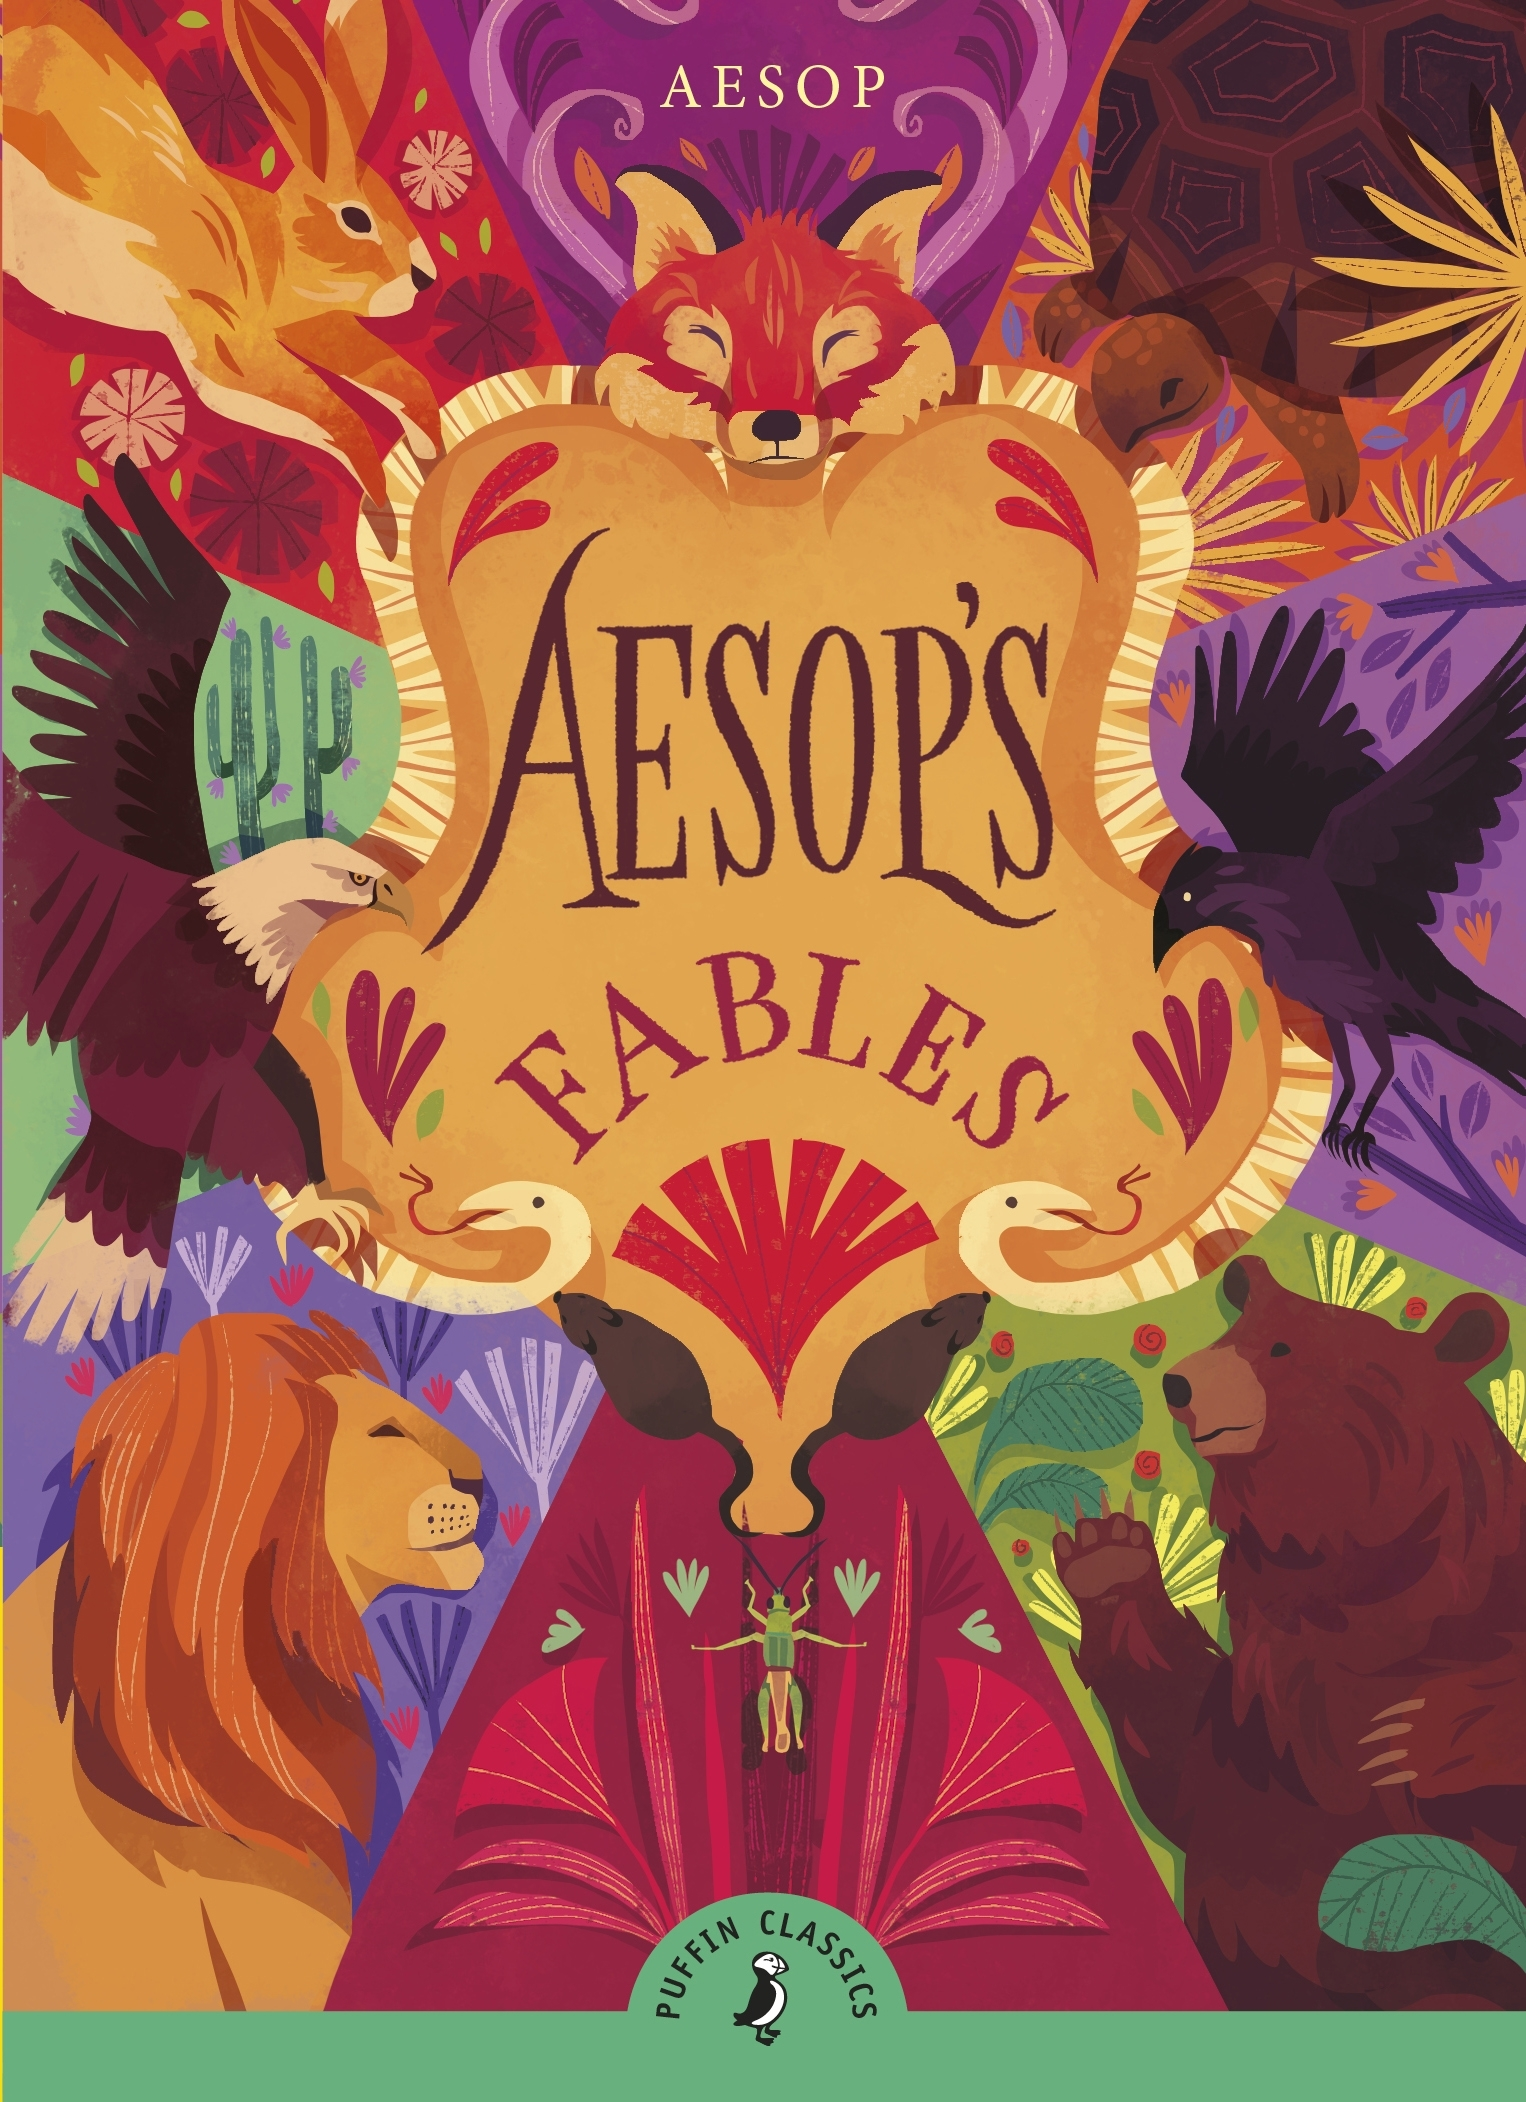 aesop fables wolf